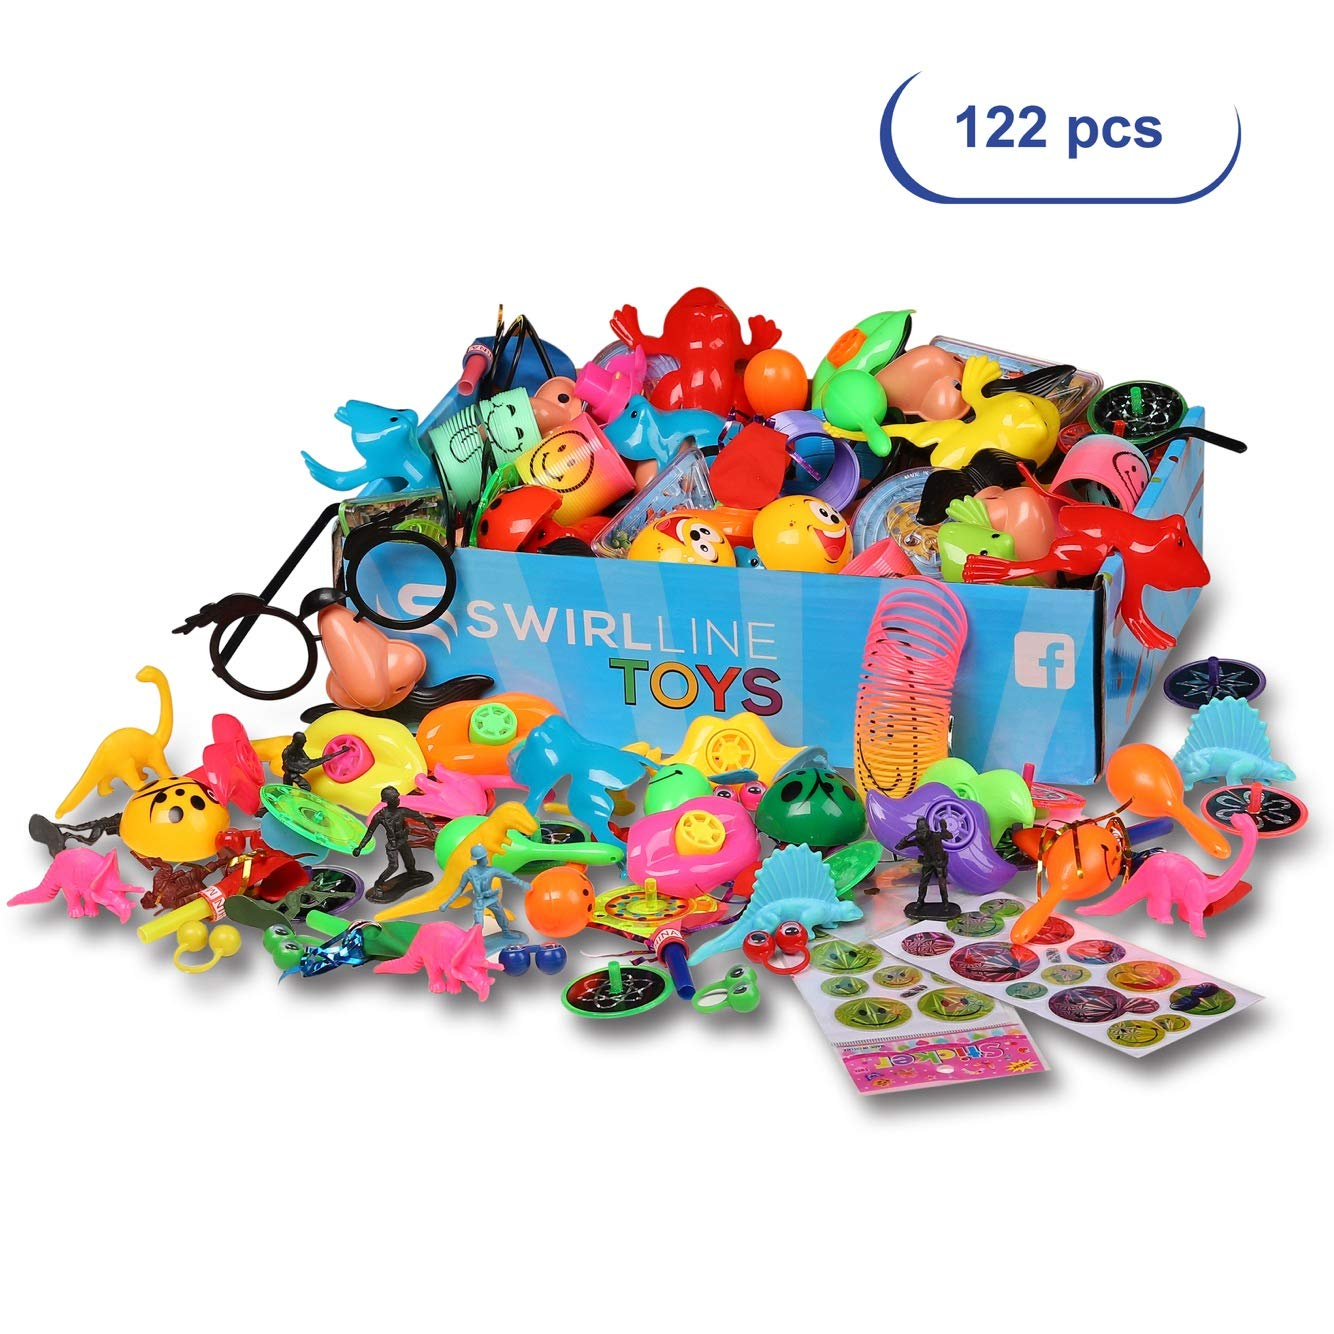 Party Favors Kids - Carnival Prizes Toys Bulk - Pinata Filler Toy Assortment - Boys Girls Birthday Halloween Box - Classroom Treasure Chest - Games Pack (122 Pack Multicolor) by S SWIRLLINE